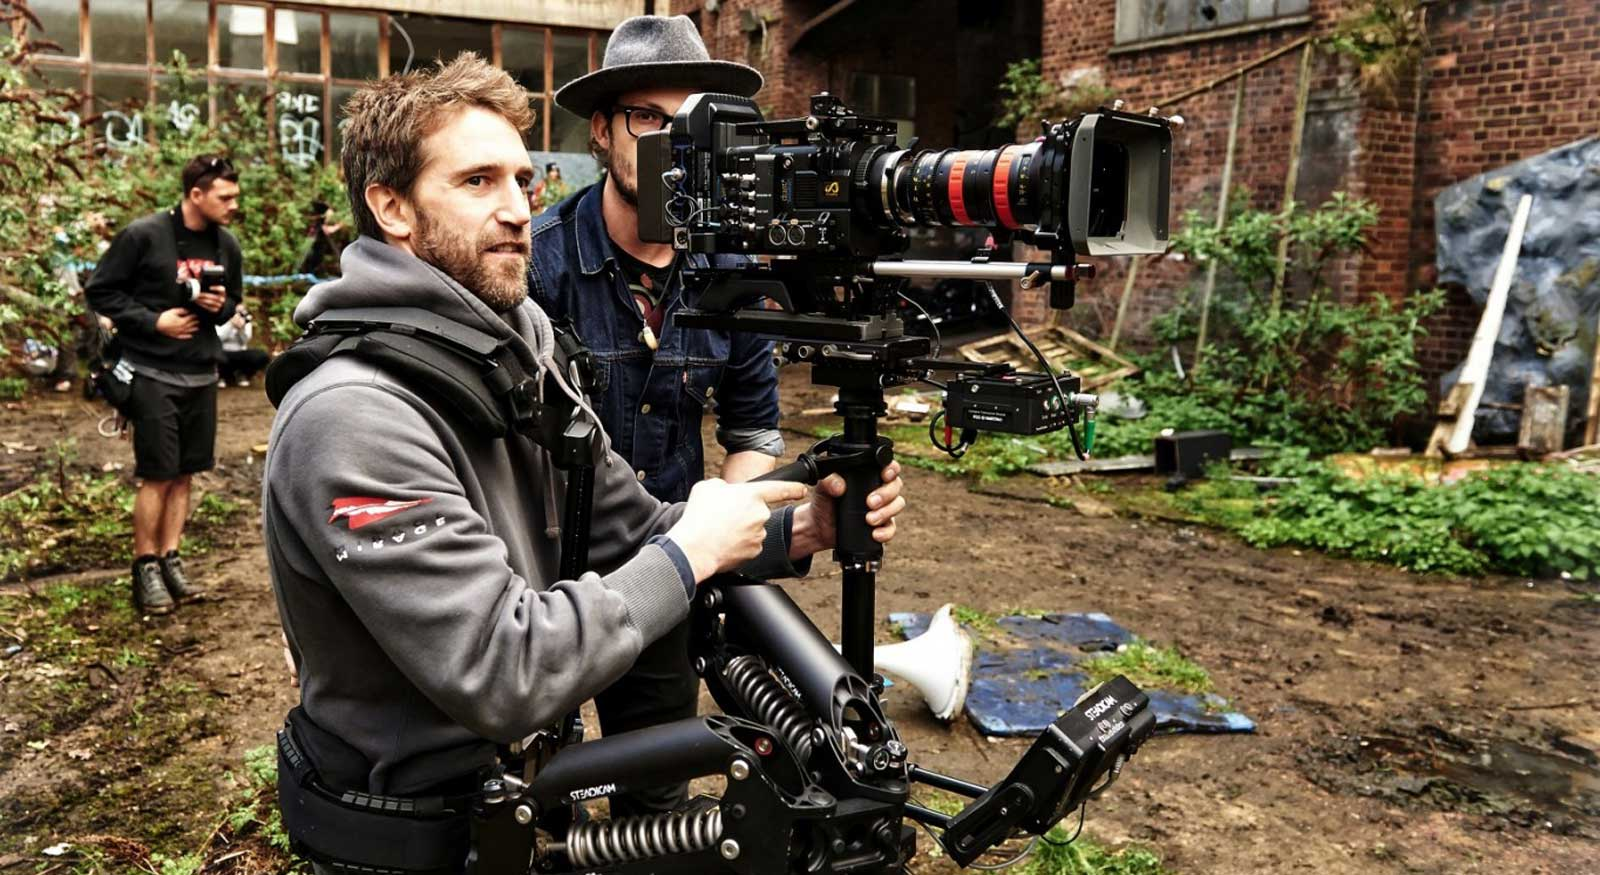 Shooting Schedule Pro Tips for a 10-Page Shoot Day - 9. Overlap master shot steadicam